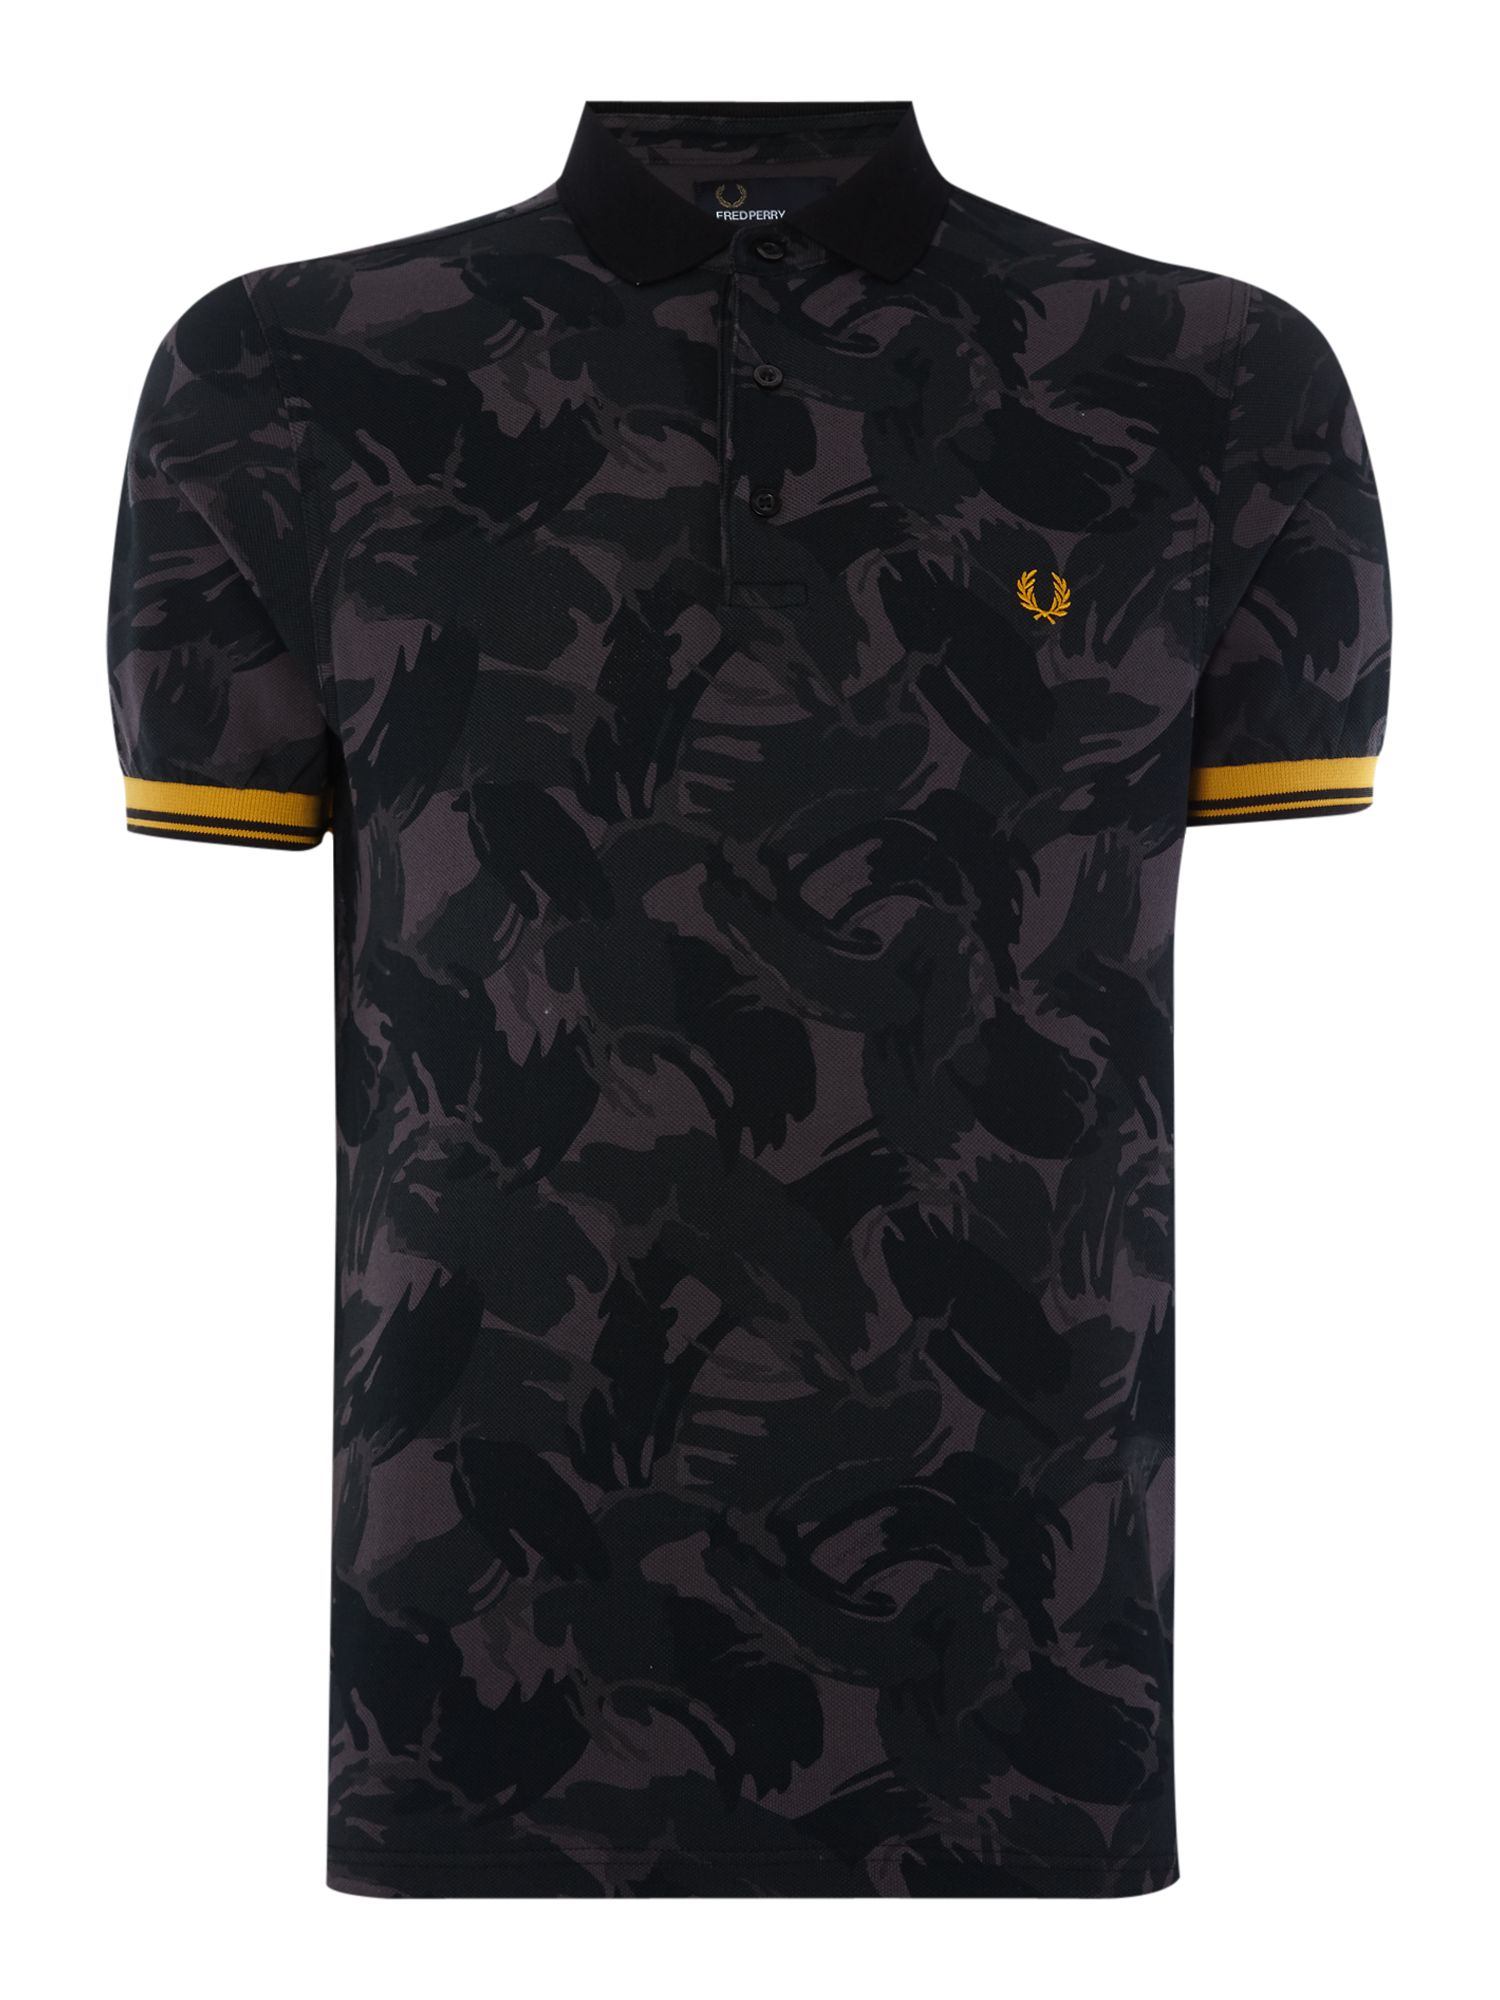 Mens Fred Perry Camouflage Pattern Pique Polo Shirt Black